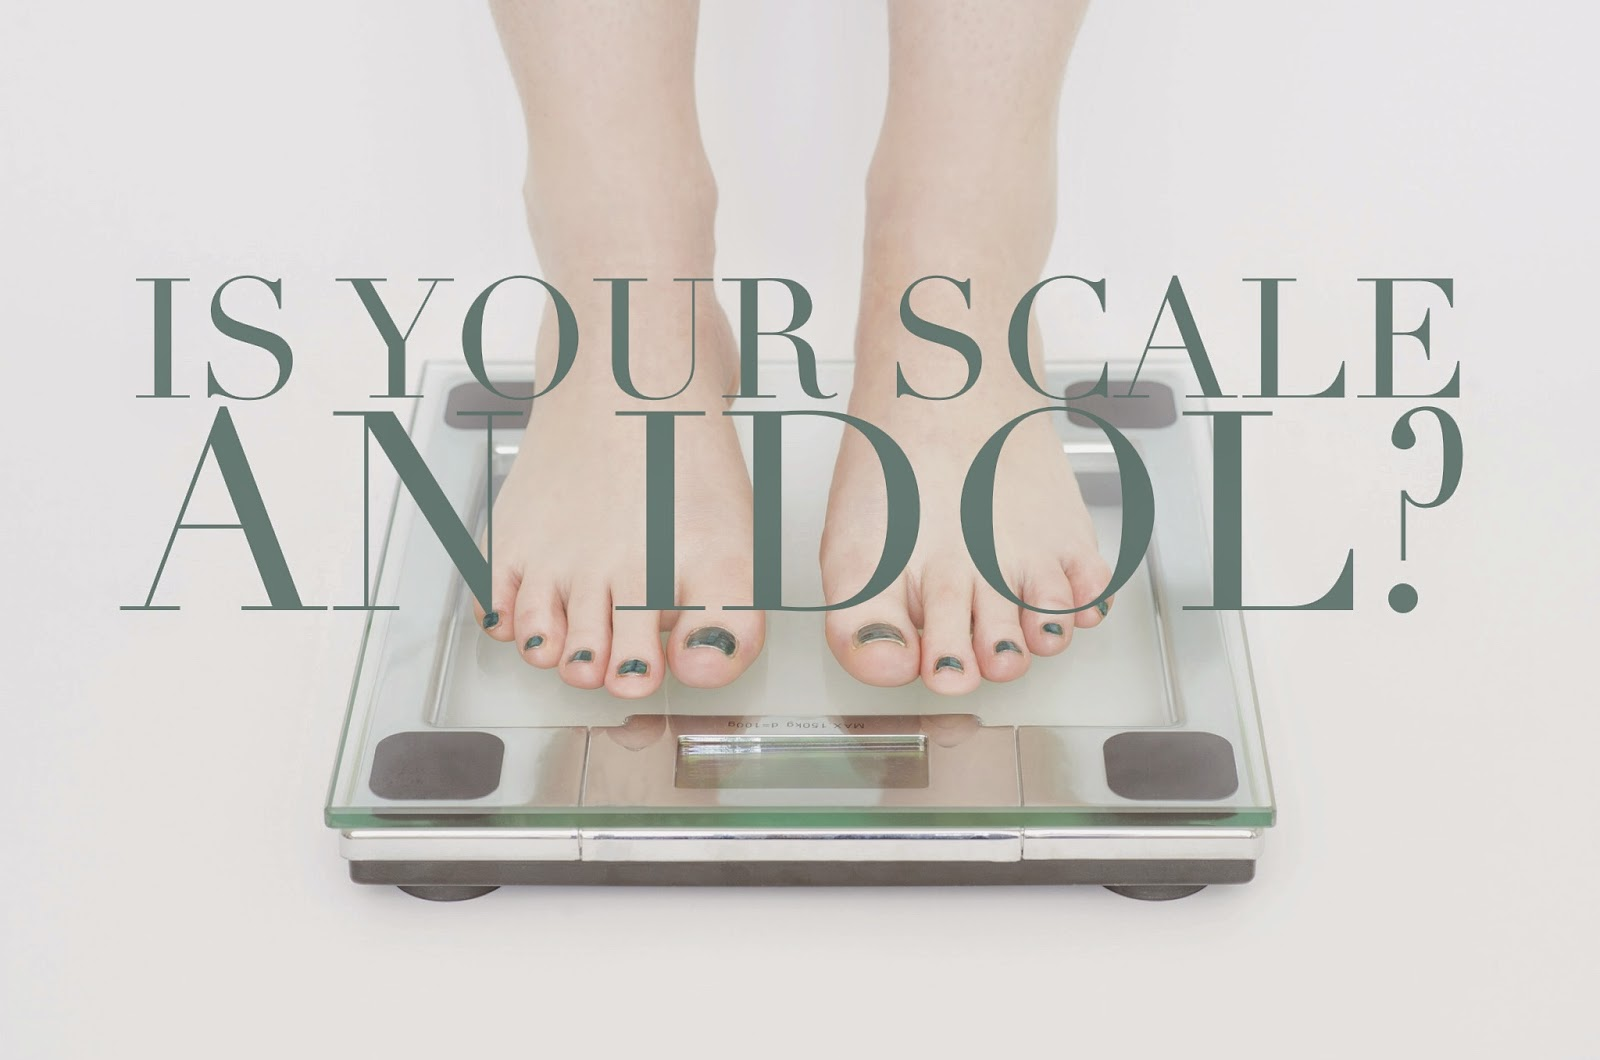 Is your scale an idol?